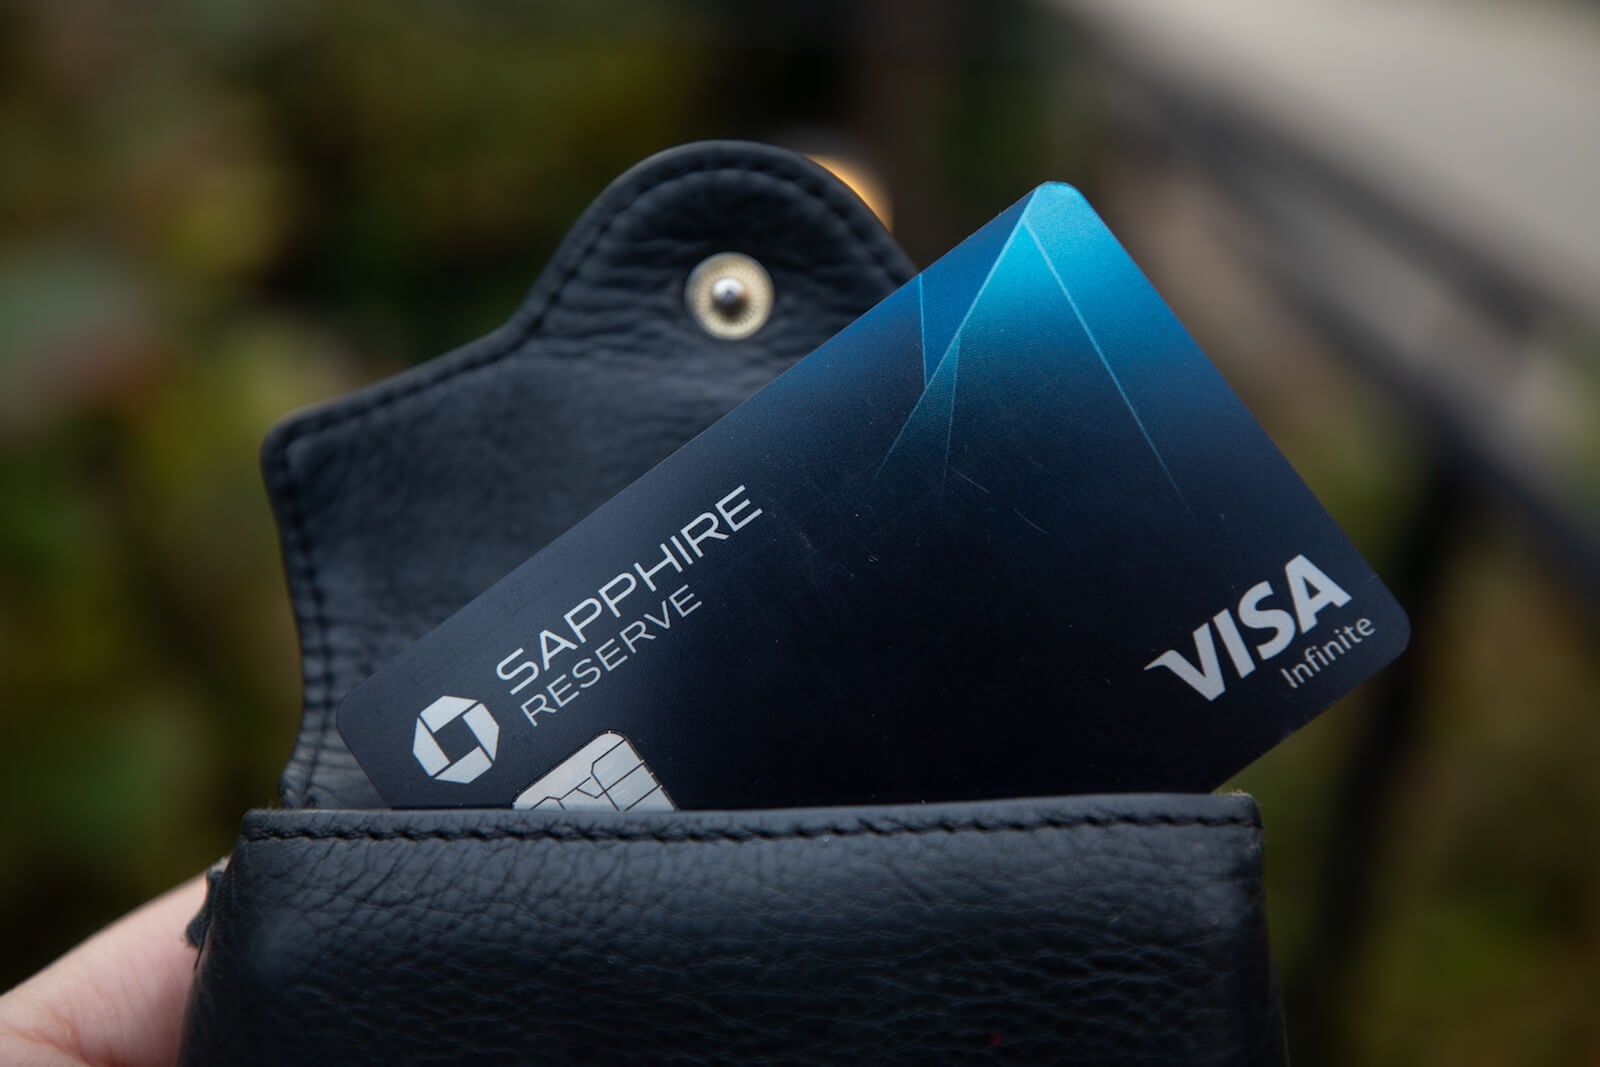 Guide to Visa Infinite card benefits